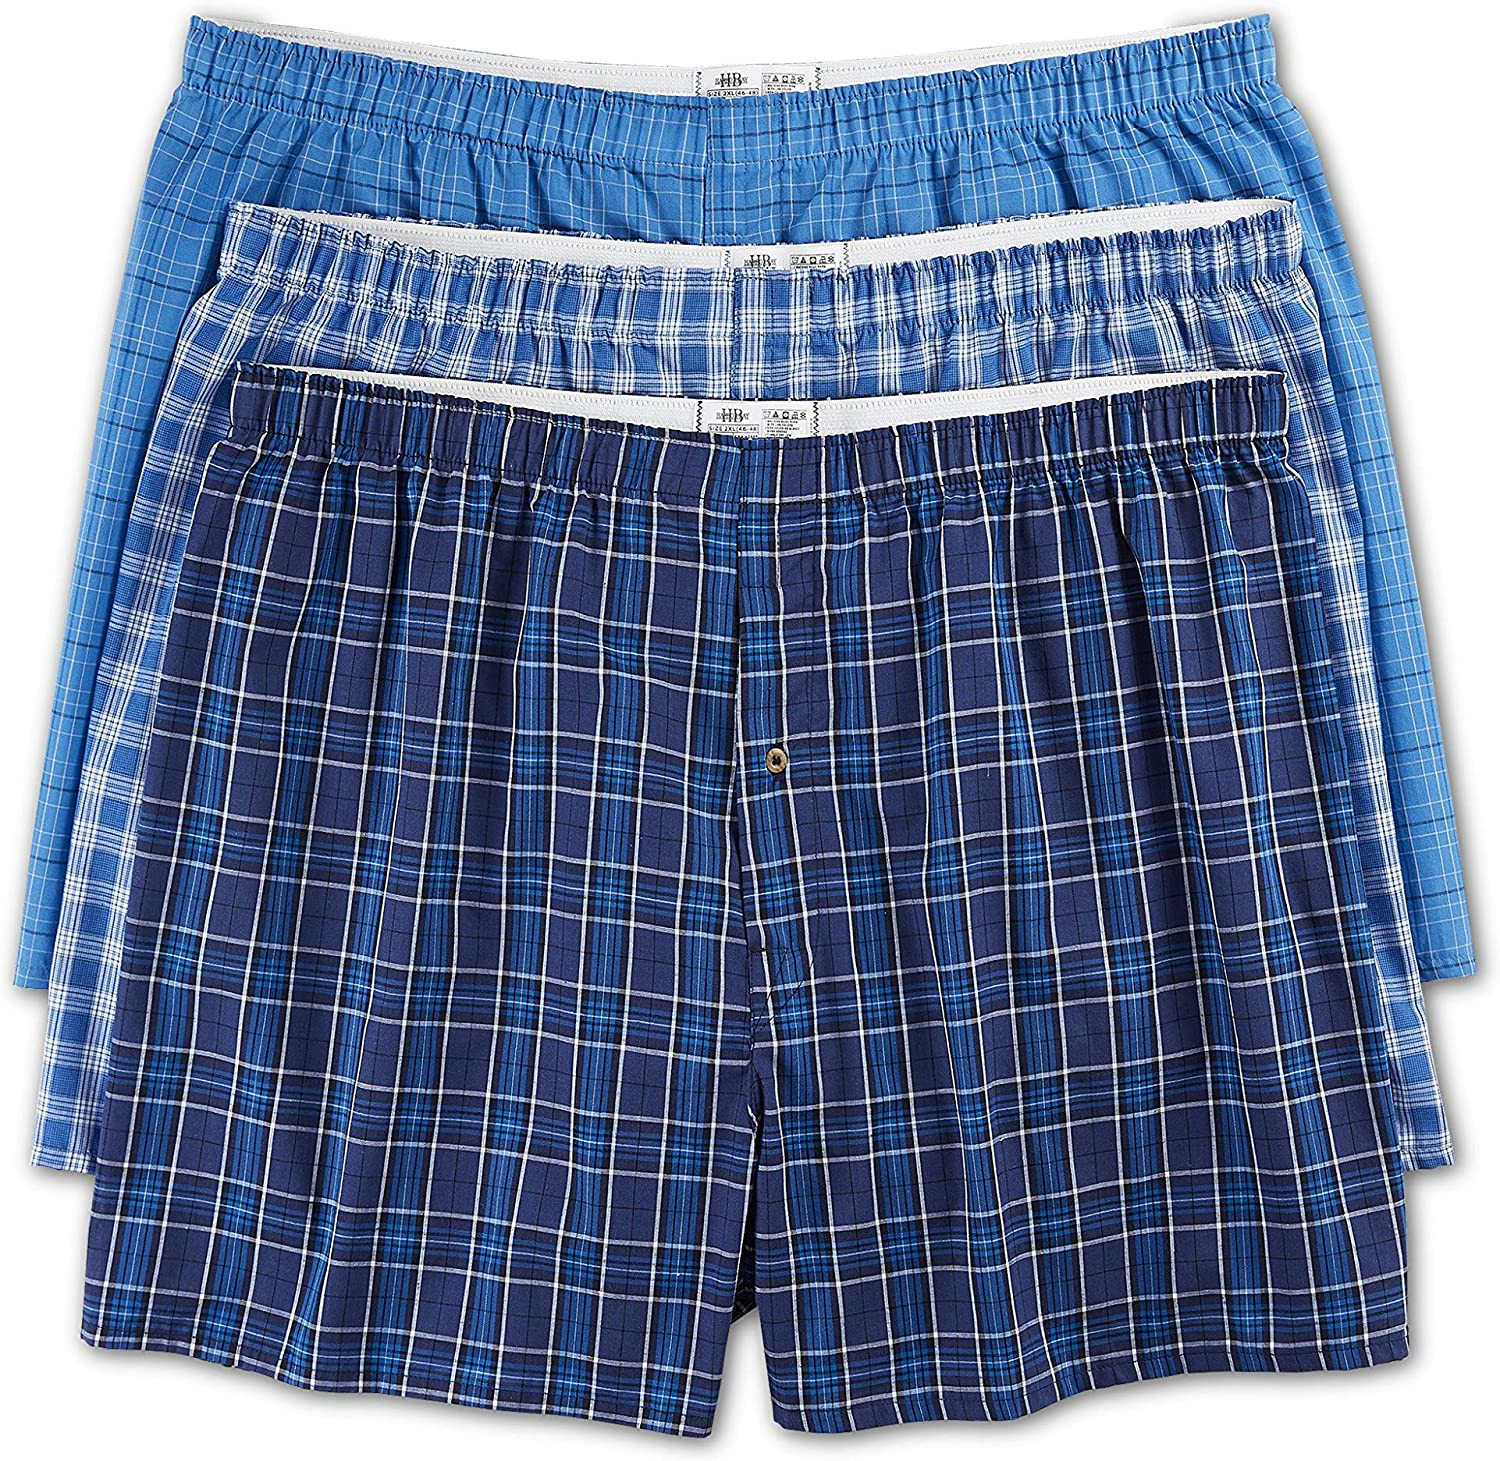 Harbor Bay by DXL Big and Tall 3-Pack Plaid Woven Boxers, Blue, XL